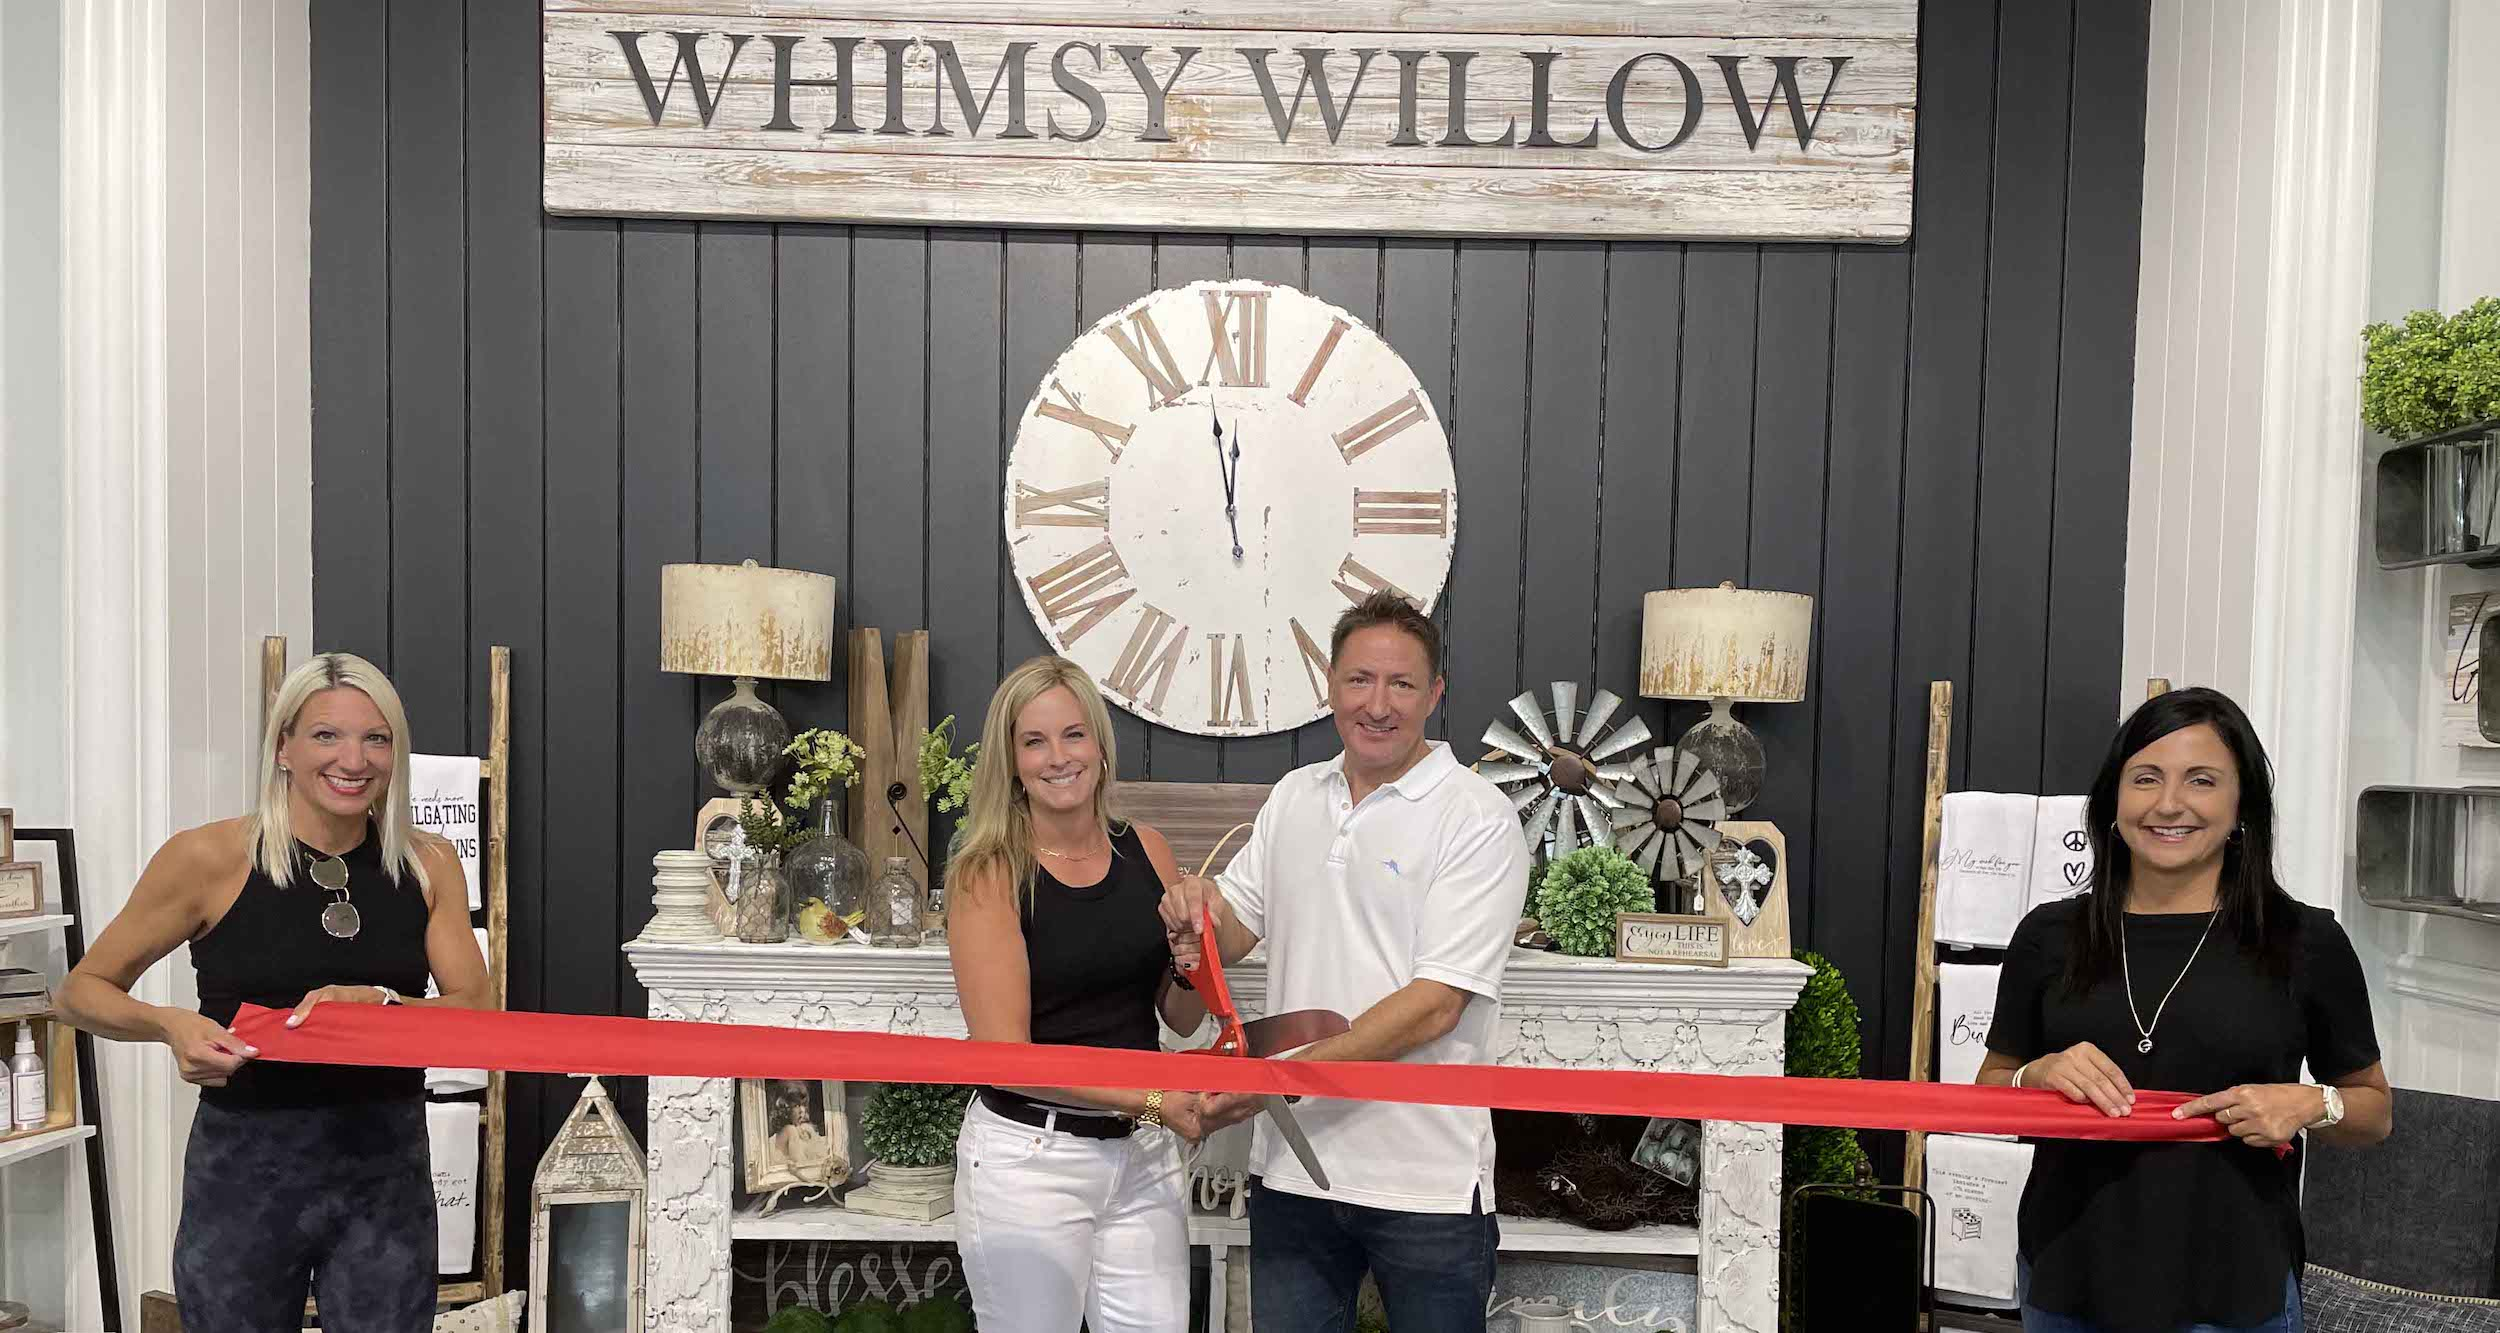 Welcome Whimsy Willow